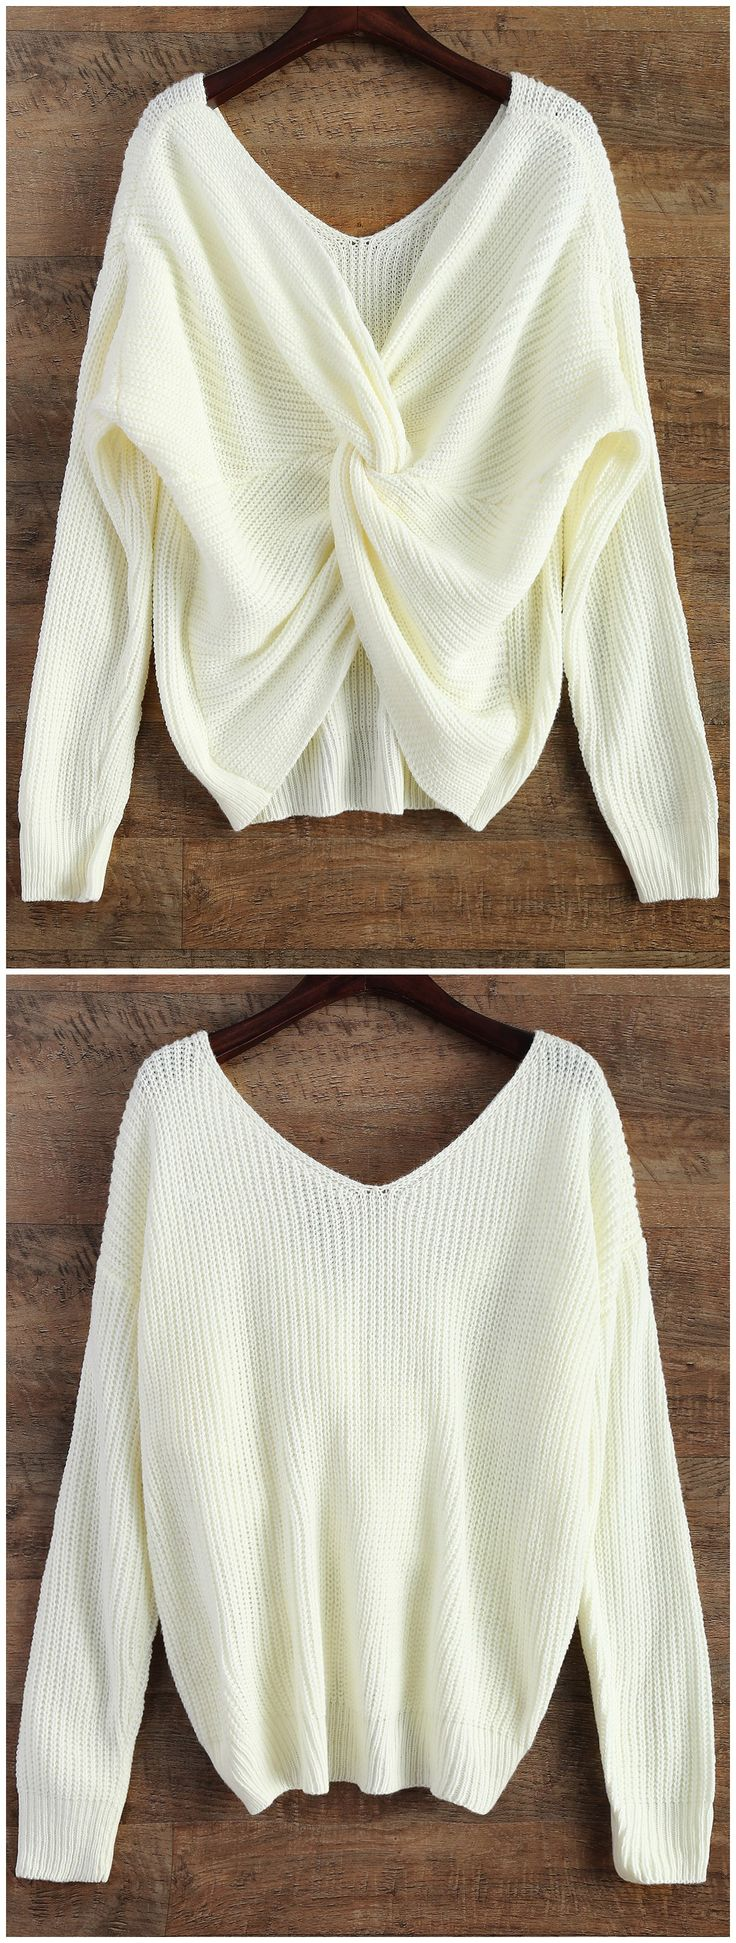 Back to school, back to saving! Free shipping worldwide! V Neck Twisted Back Sweater. Zaful,zaful.com,zaful online shopping,sweaters&cardigans,sweater,sweaters,cardigans,choker sweater,chokers,chunky sweater,chunky,cardigans for women,knit,knitted,knitting,knitwear,cardigan,cardigan outfit,women fashion,winter outfits,winter fashion,fall outfits,fall fashion. @zaful Extra 10% OFF Code:ZF2017